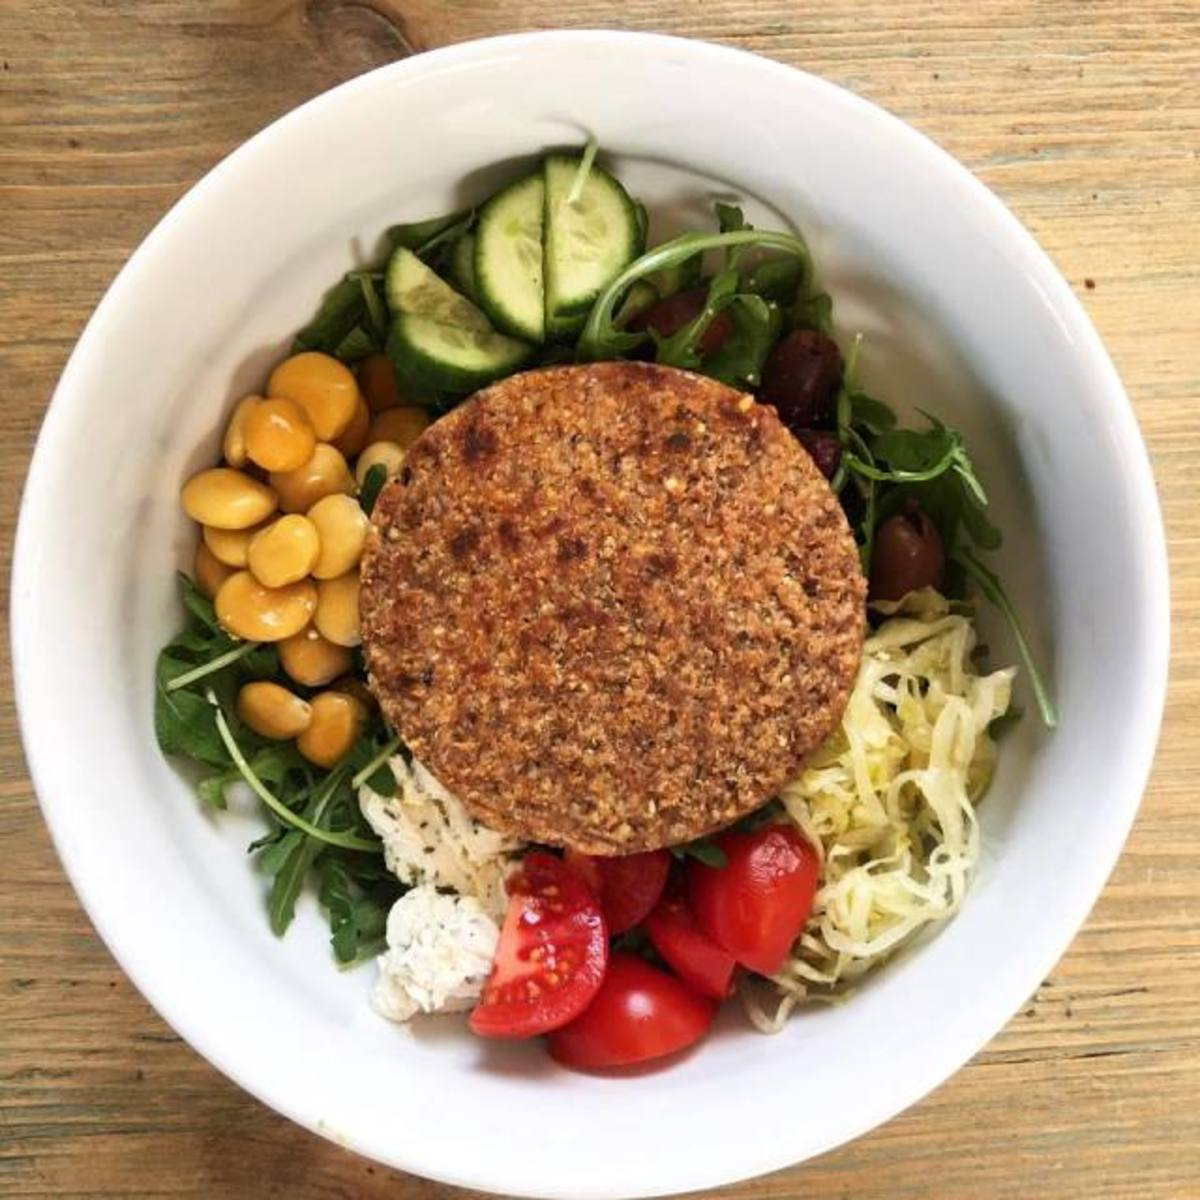 Hilary's Eat Well burger salad